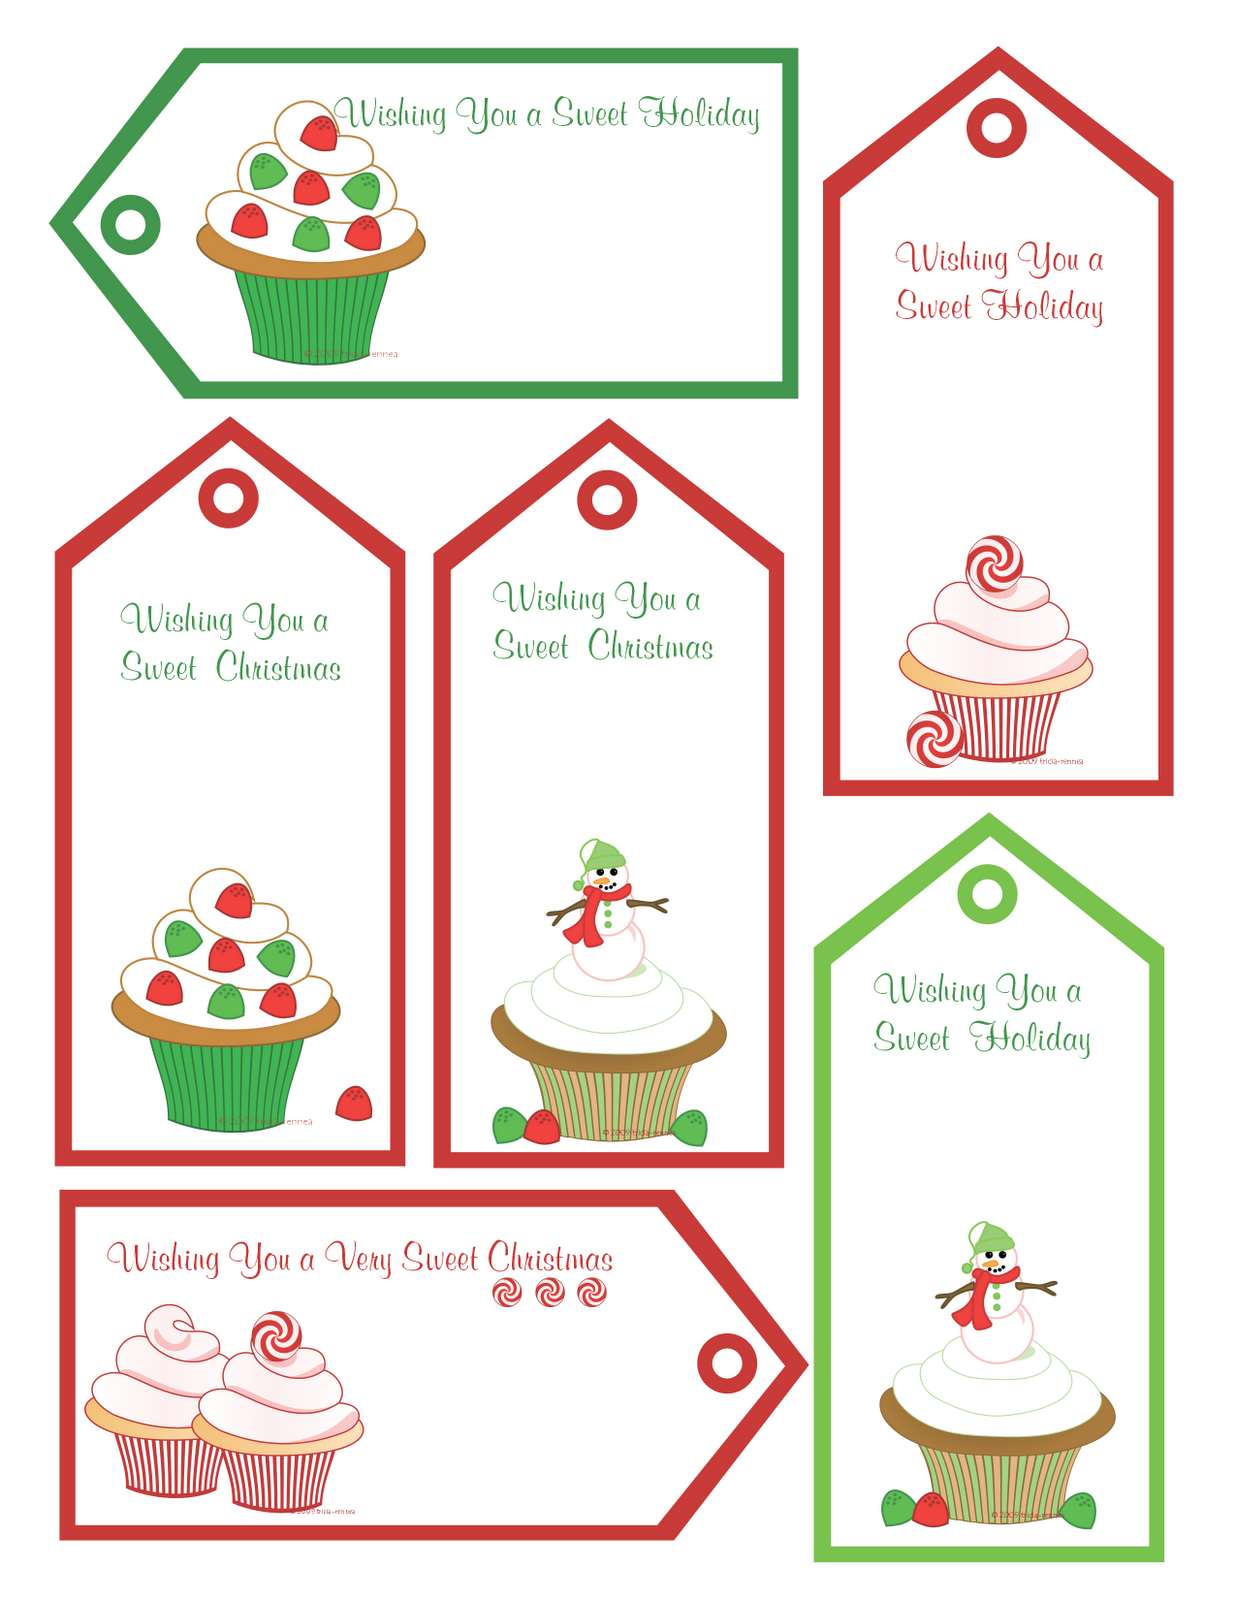 pin by joyce newport on cool ideas christmas printables christmas